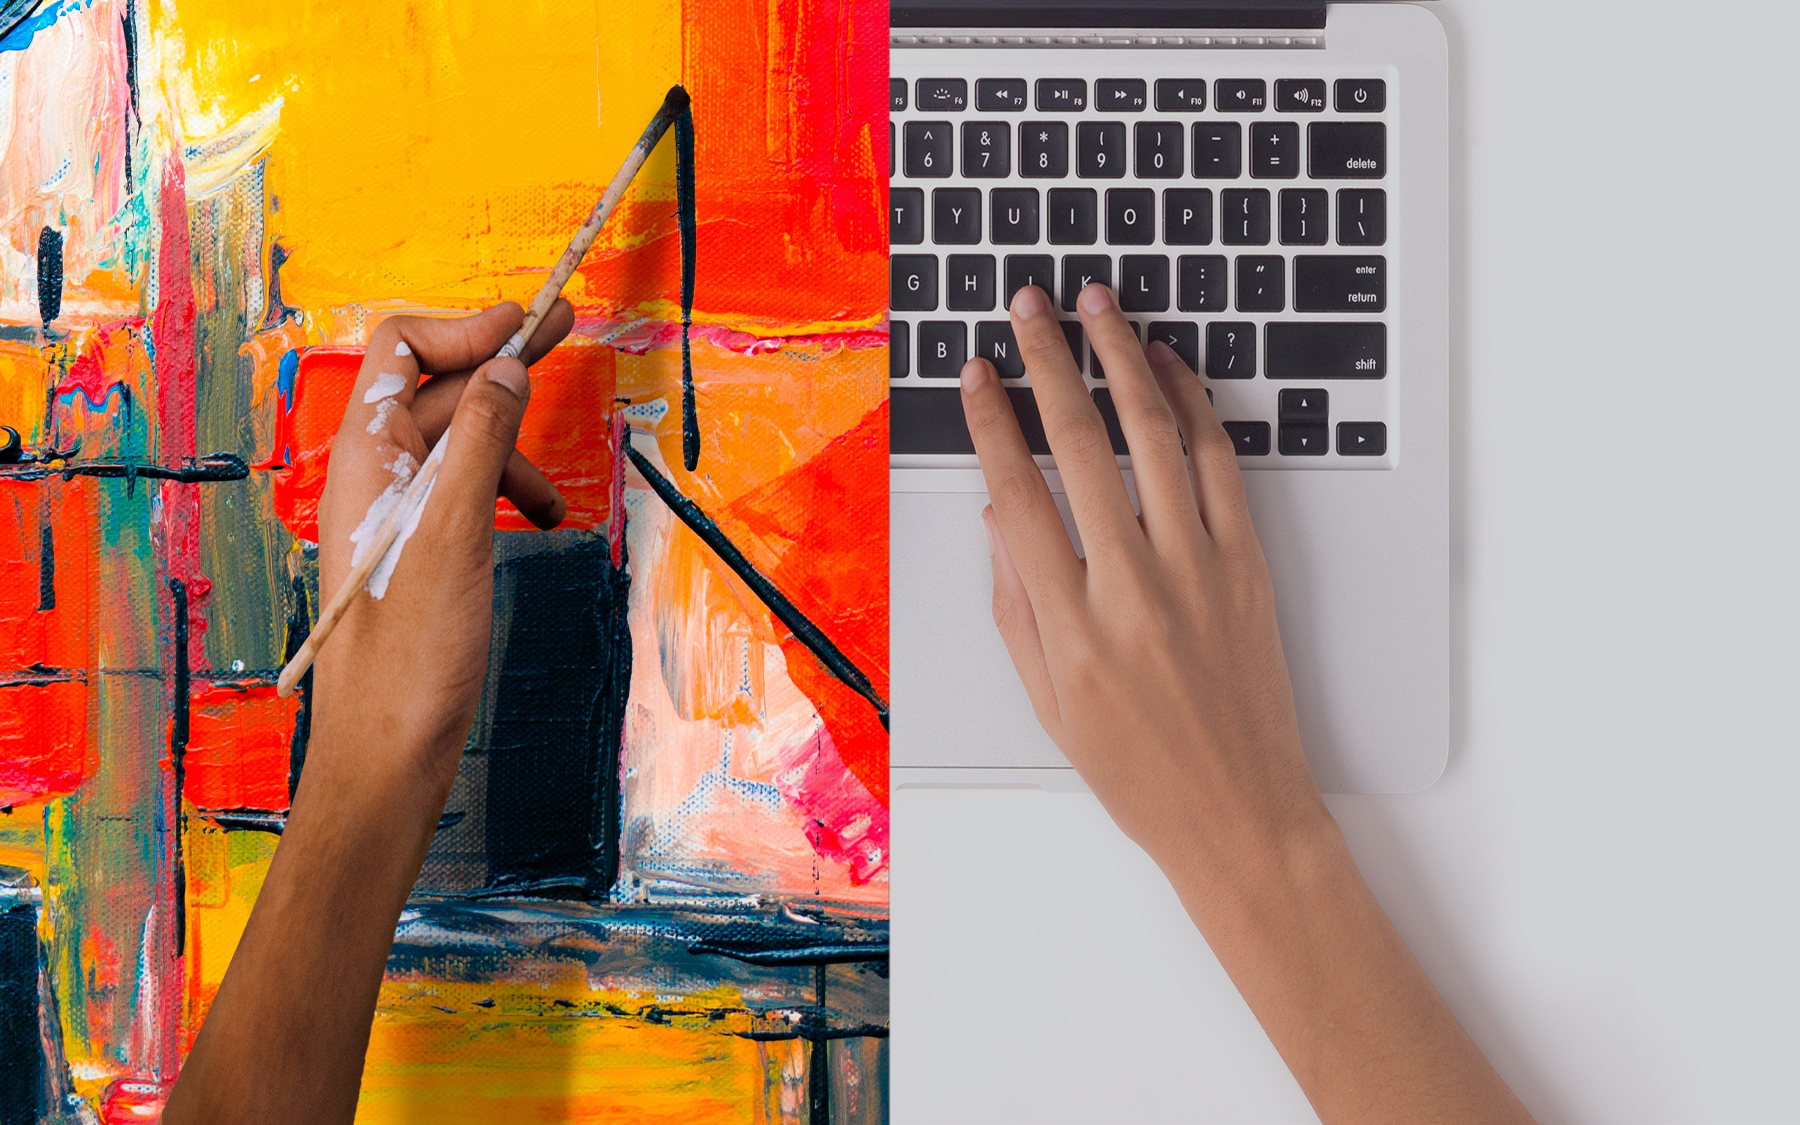 Split image with one person painting and one person typing on a laption.